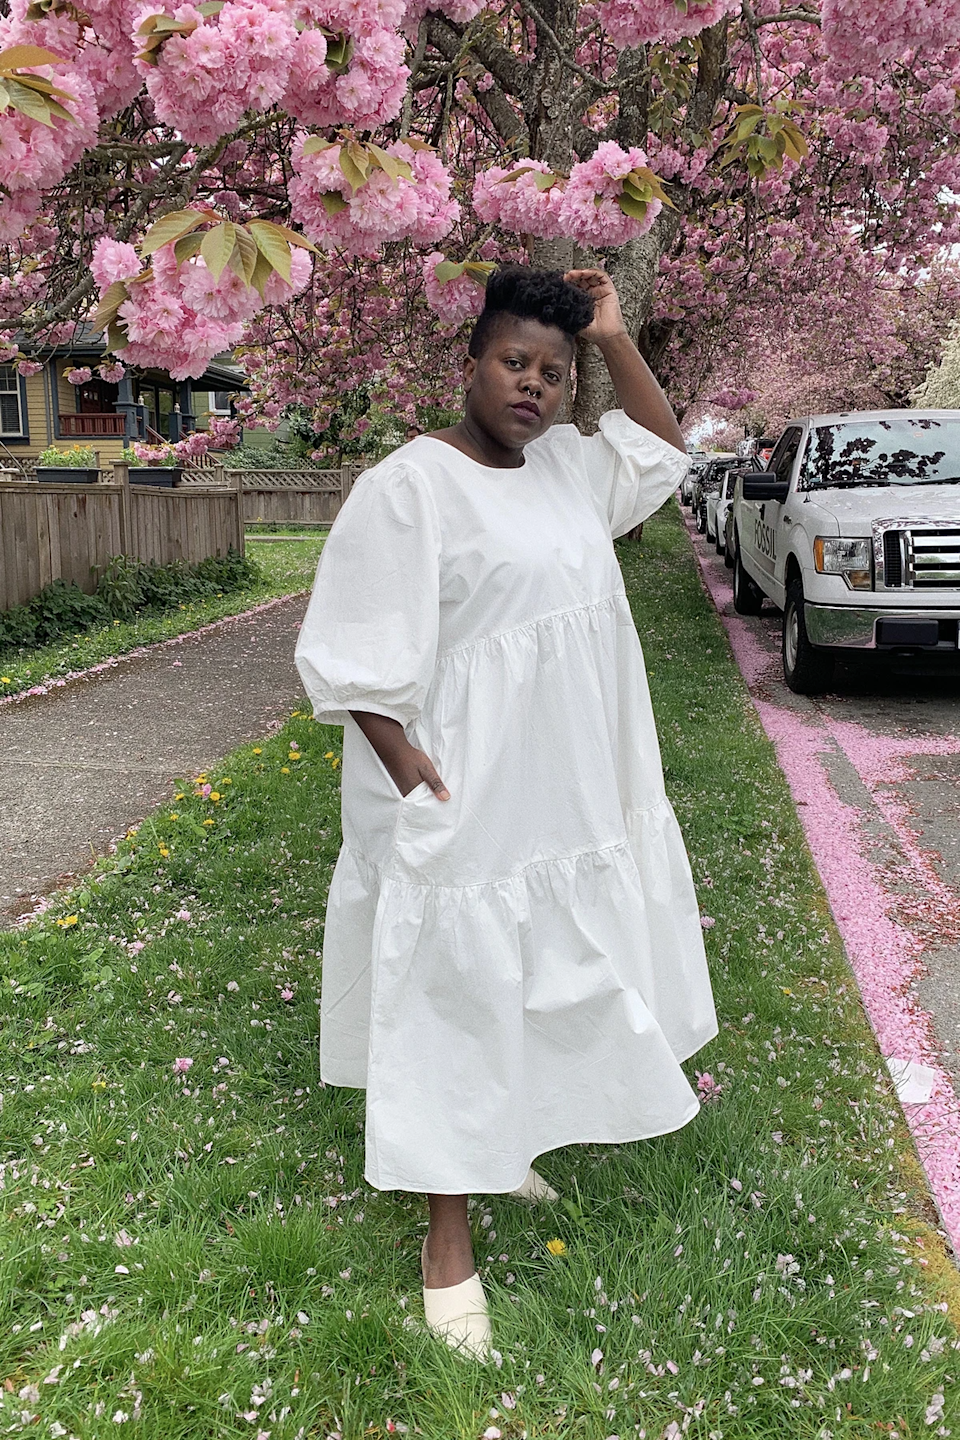 """<br> <br> <strong>Wray</strong> Rosemary Dress, $, available at <a href=""""https://go.skimresources.com/?id=30283X879131&url=https%3A%2F%2Fwray.nyc%2Fcollections%2Ffrontpage%2Fproducts%2Frosemary-dress-3"""" rel=""""nofollow noopener"""" target=""""_blank"""" data-ylk=""""slk:Wray"""" class=""""link rapid-noclick-resp"""">Wray</a>"""